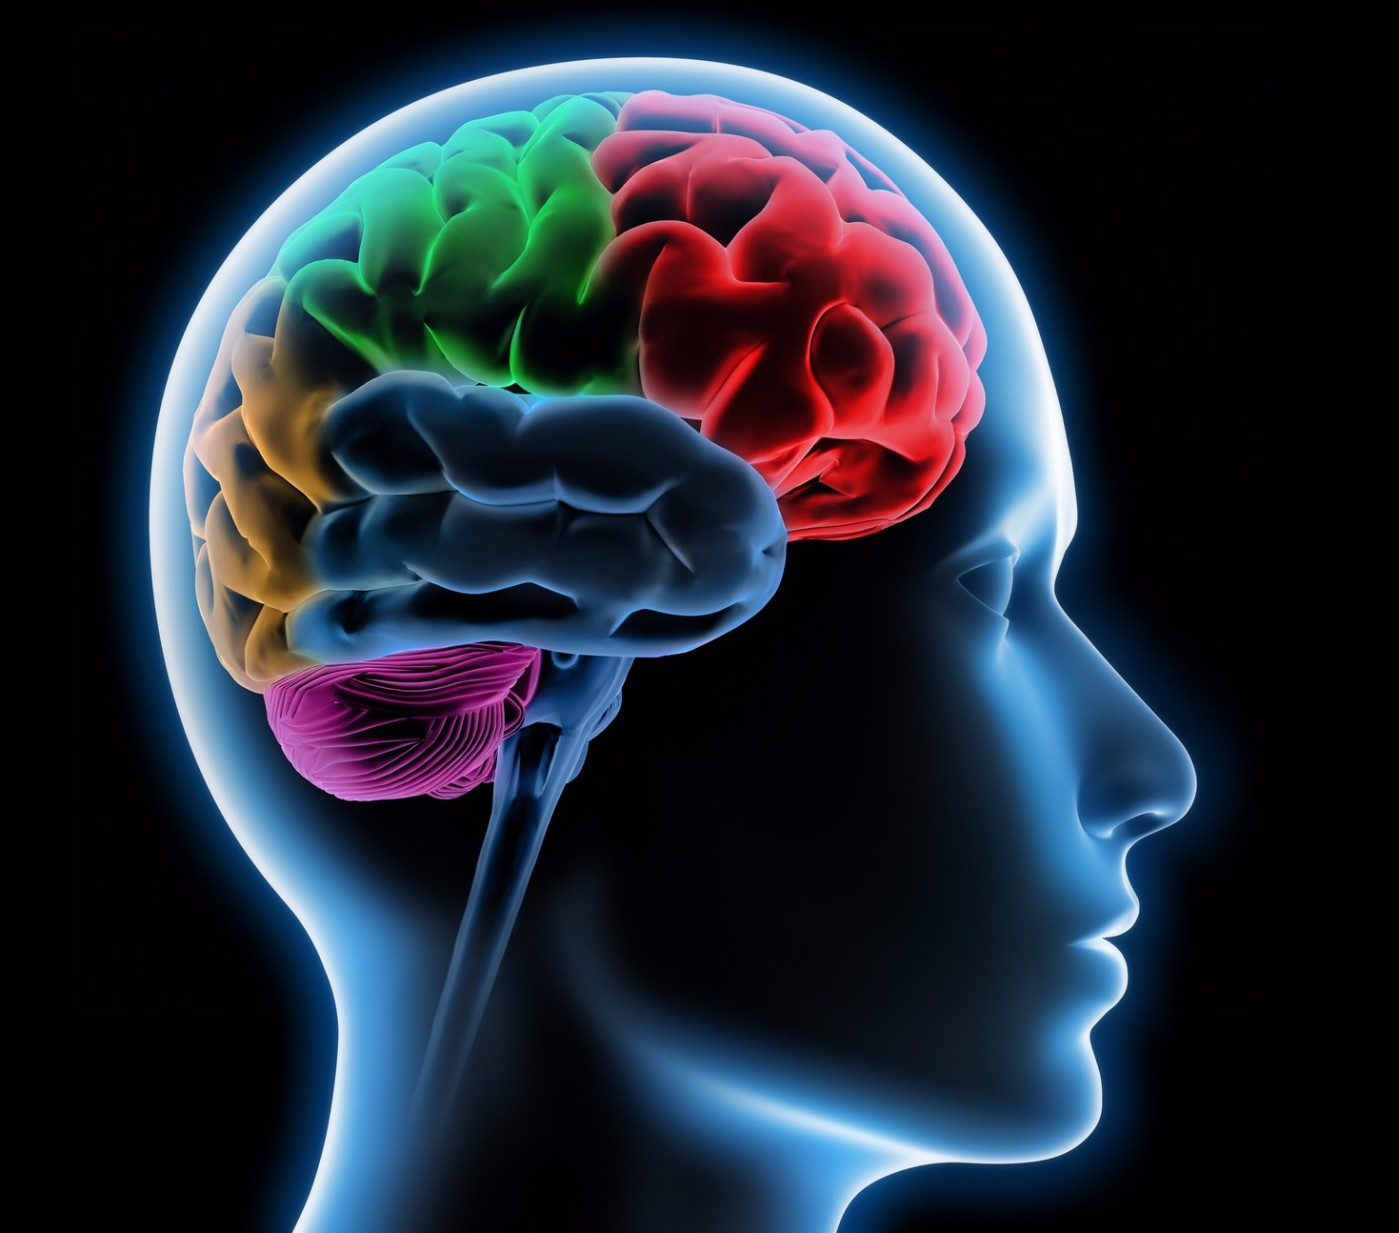 Study uses MRI brain scans to examine the 'Neurobiology of Climate ChangeDenial'